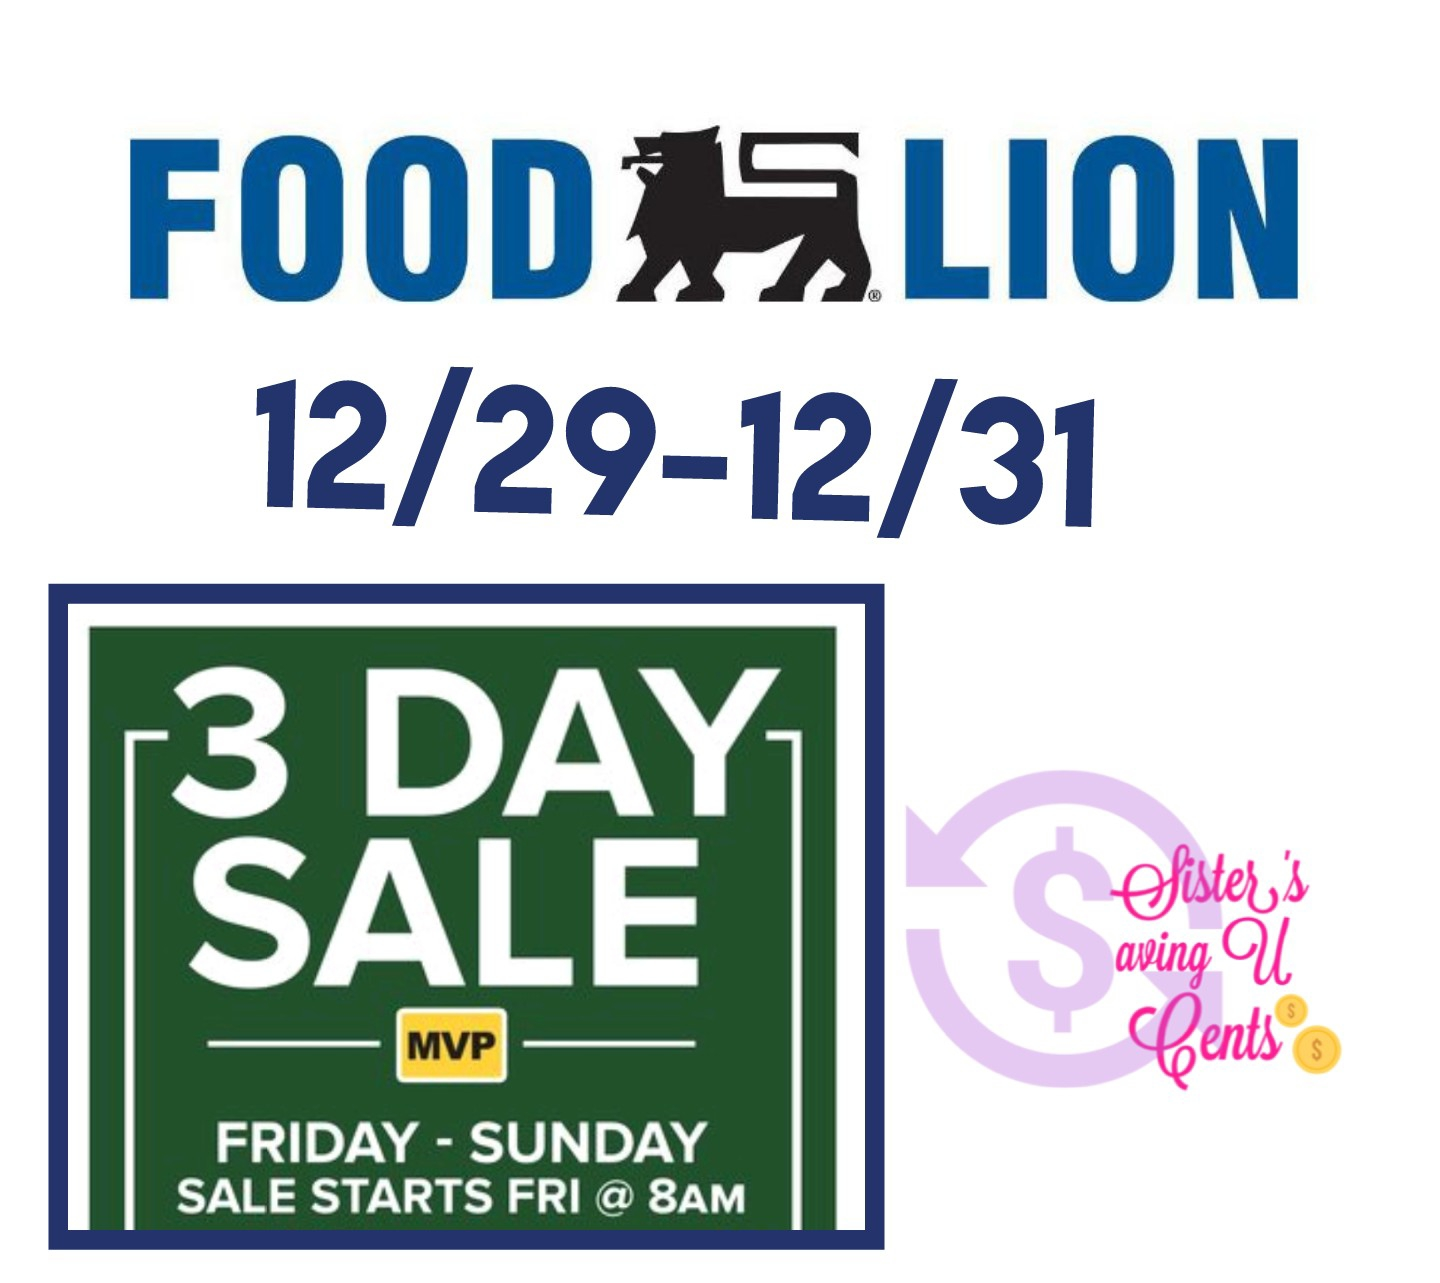 Food Lion 3 Day Sale !!